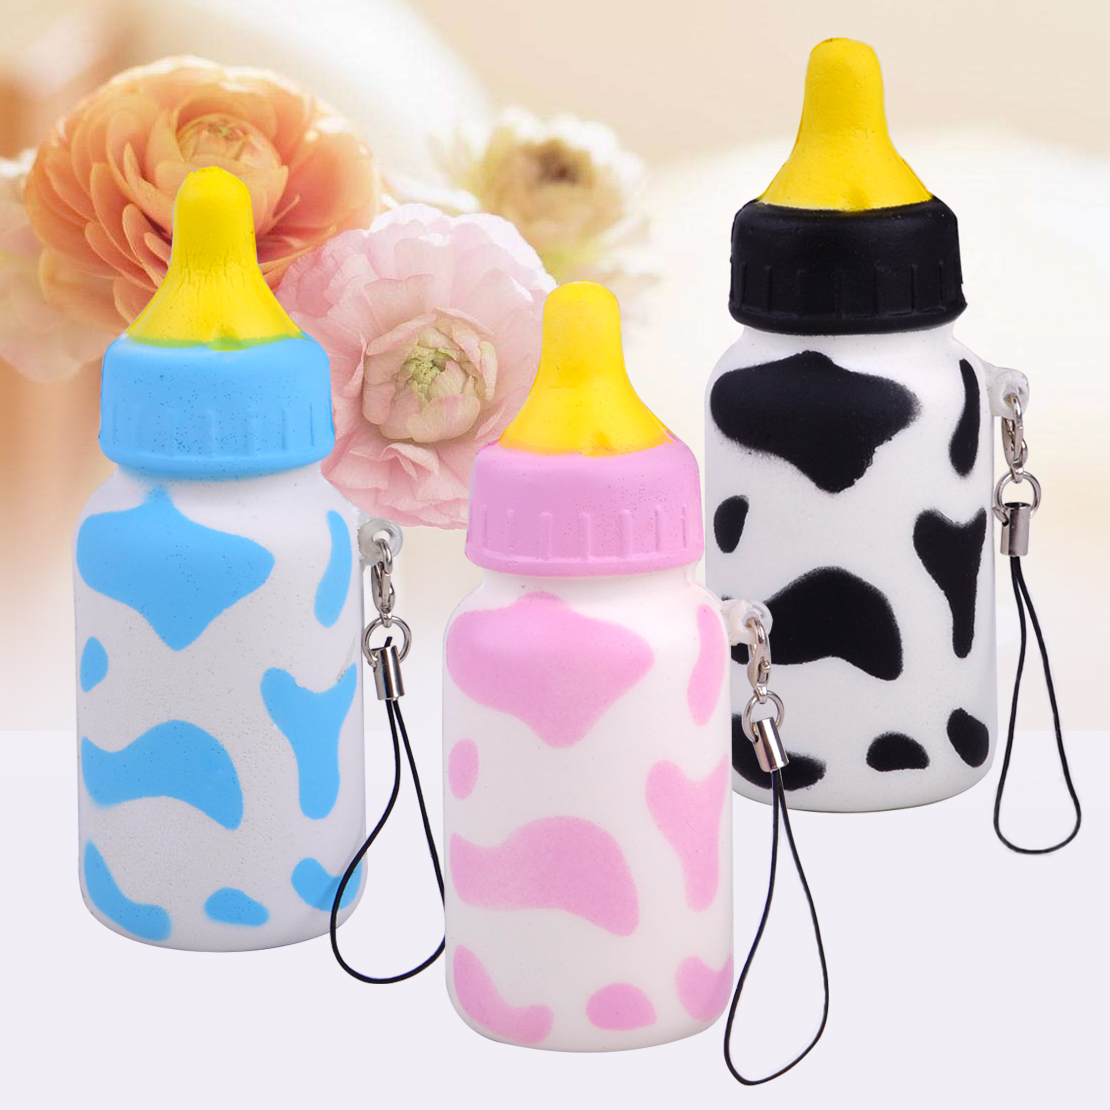 10cm squishy saugflasche weich flasche duftend spielzeug baby shower party deko ebay. Black Bedroom Furniture Sets. Home Design Ideas